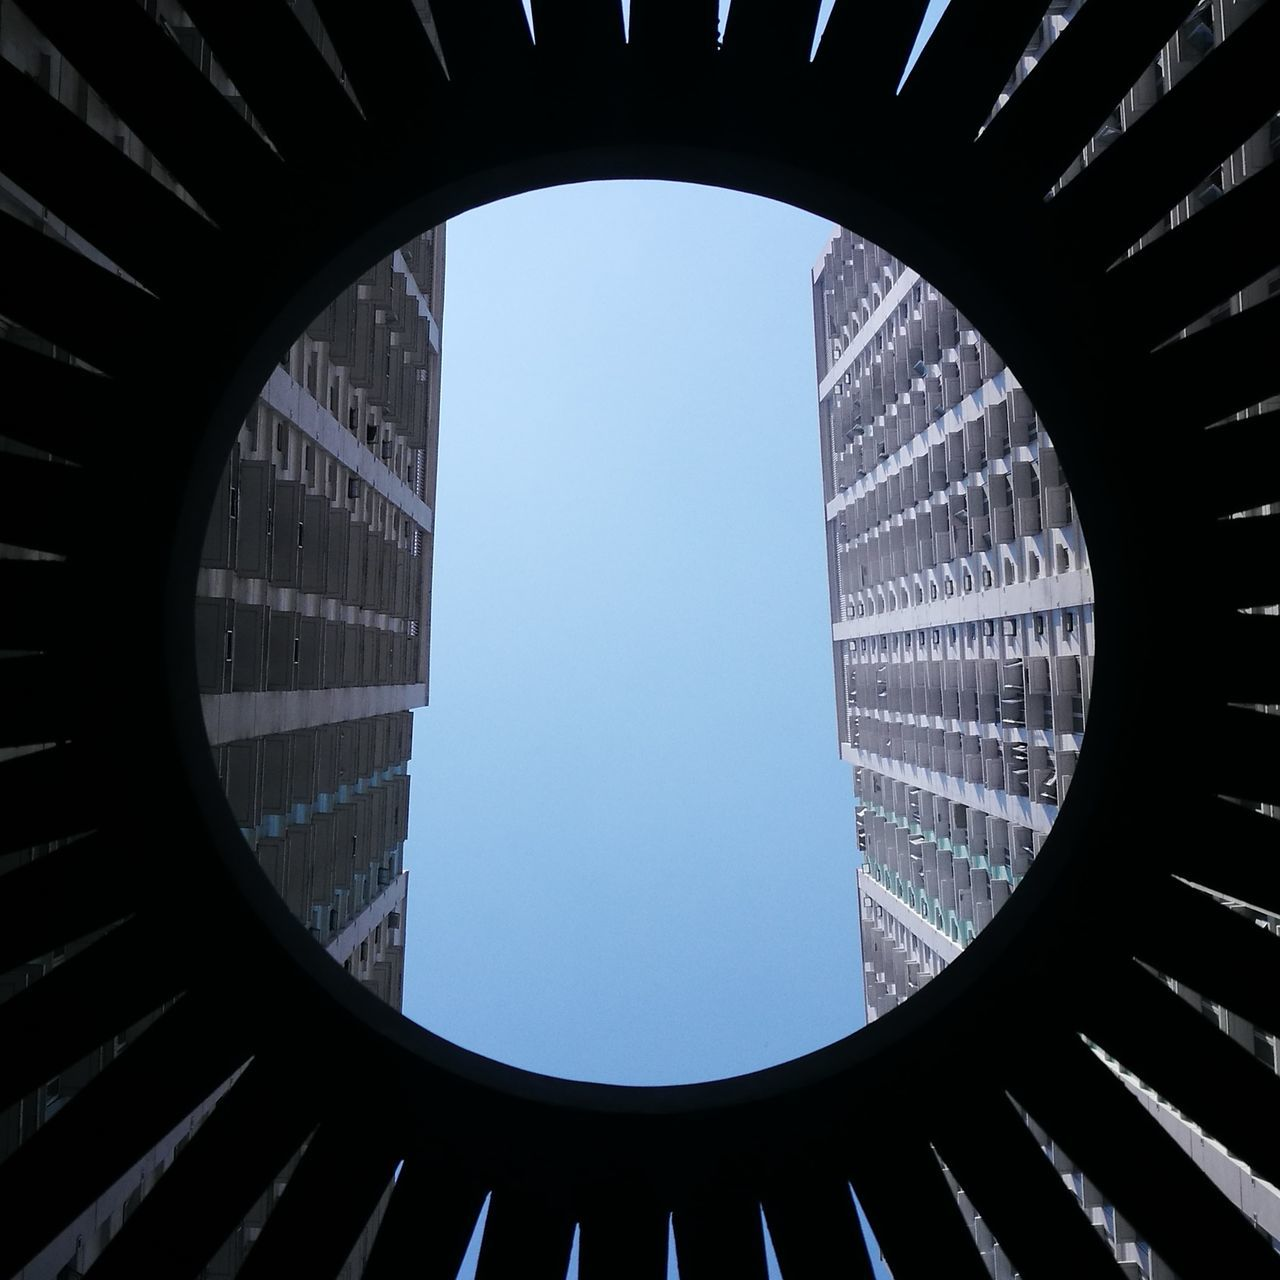 architecture, indoors, low angle view, built structure, no people, day, clear sky, close-up